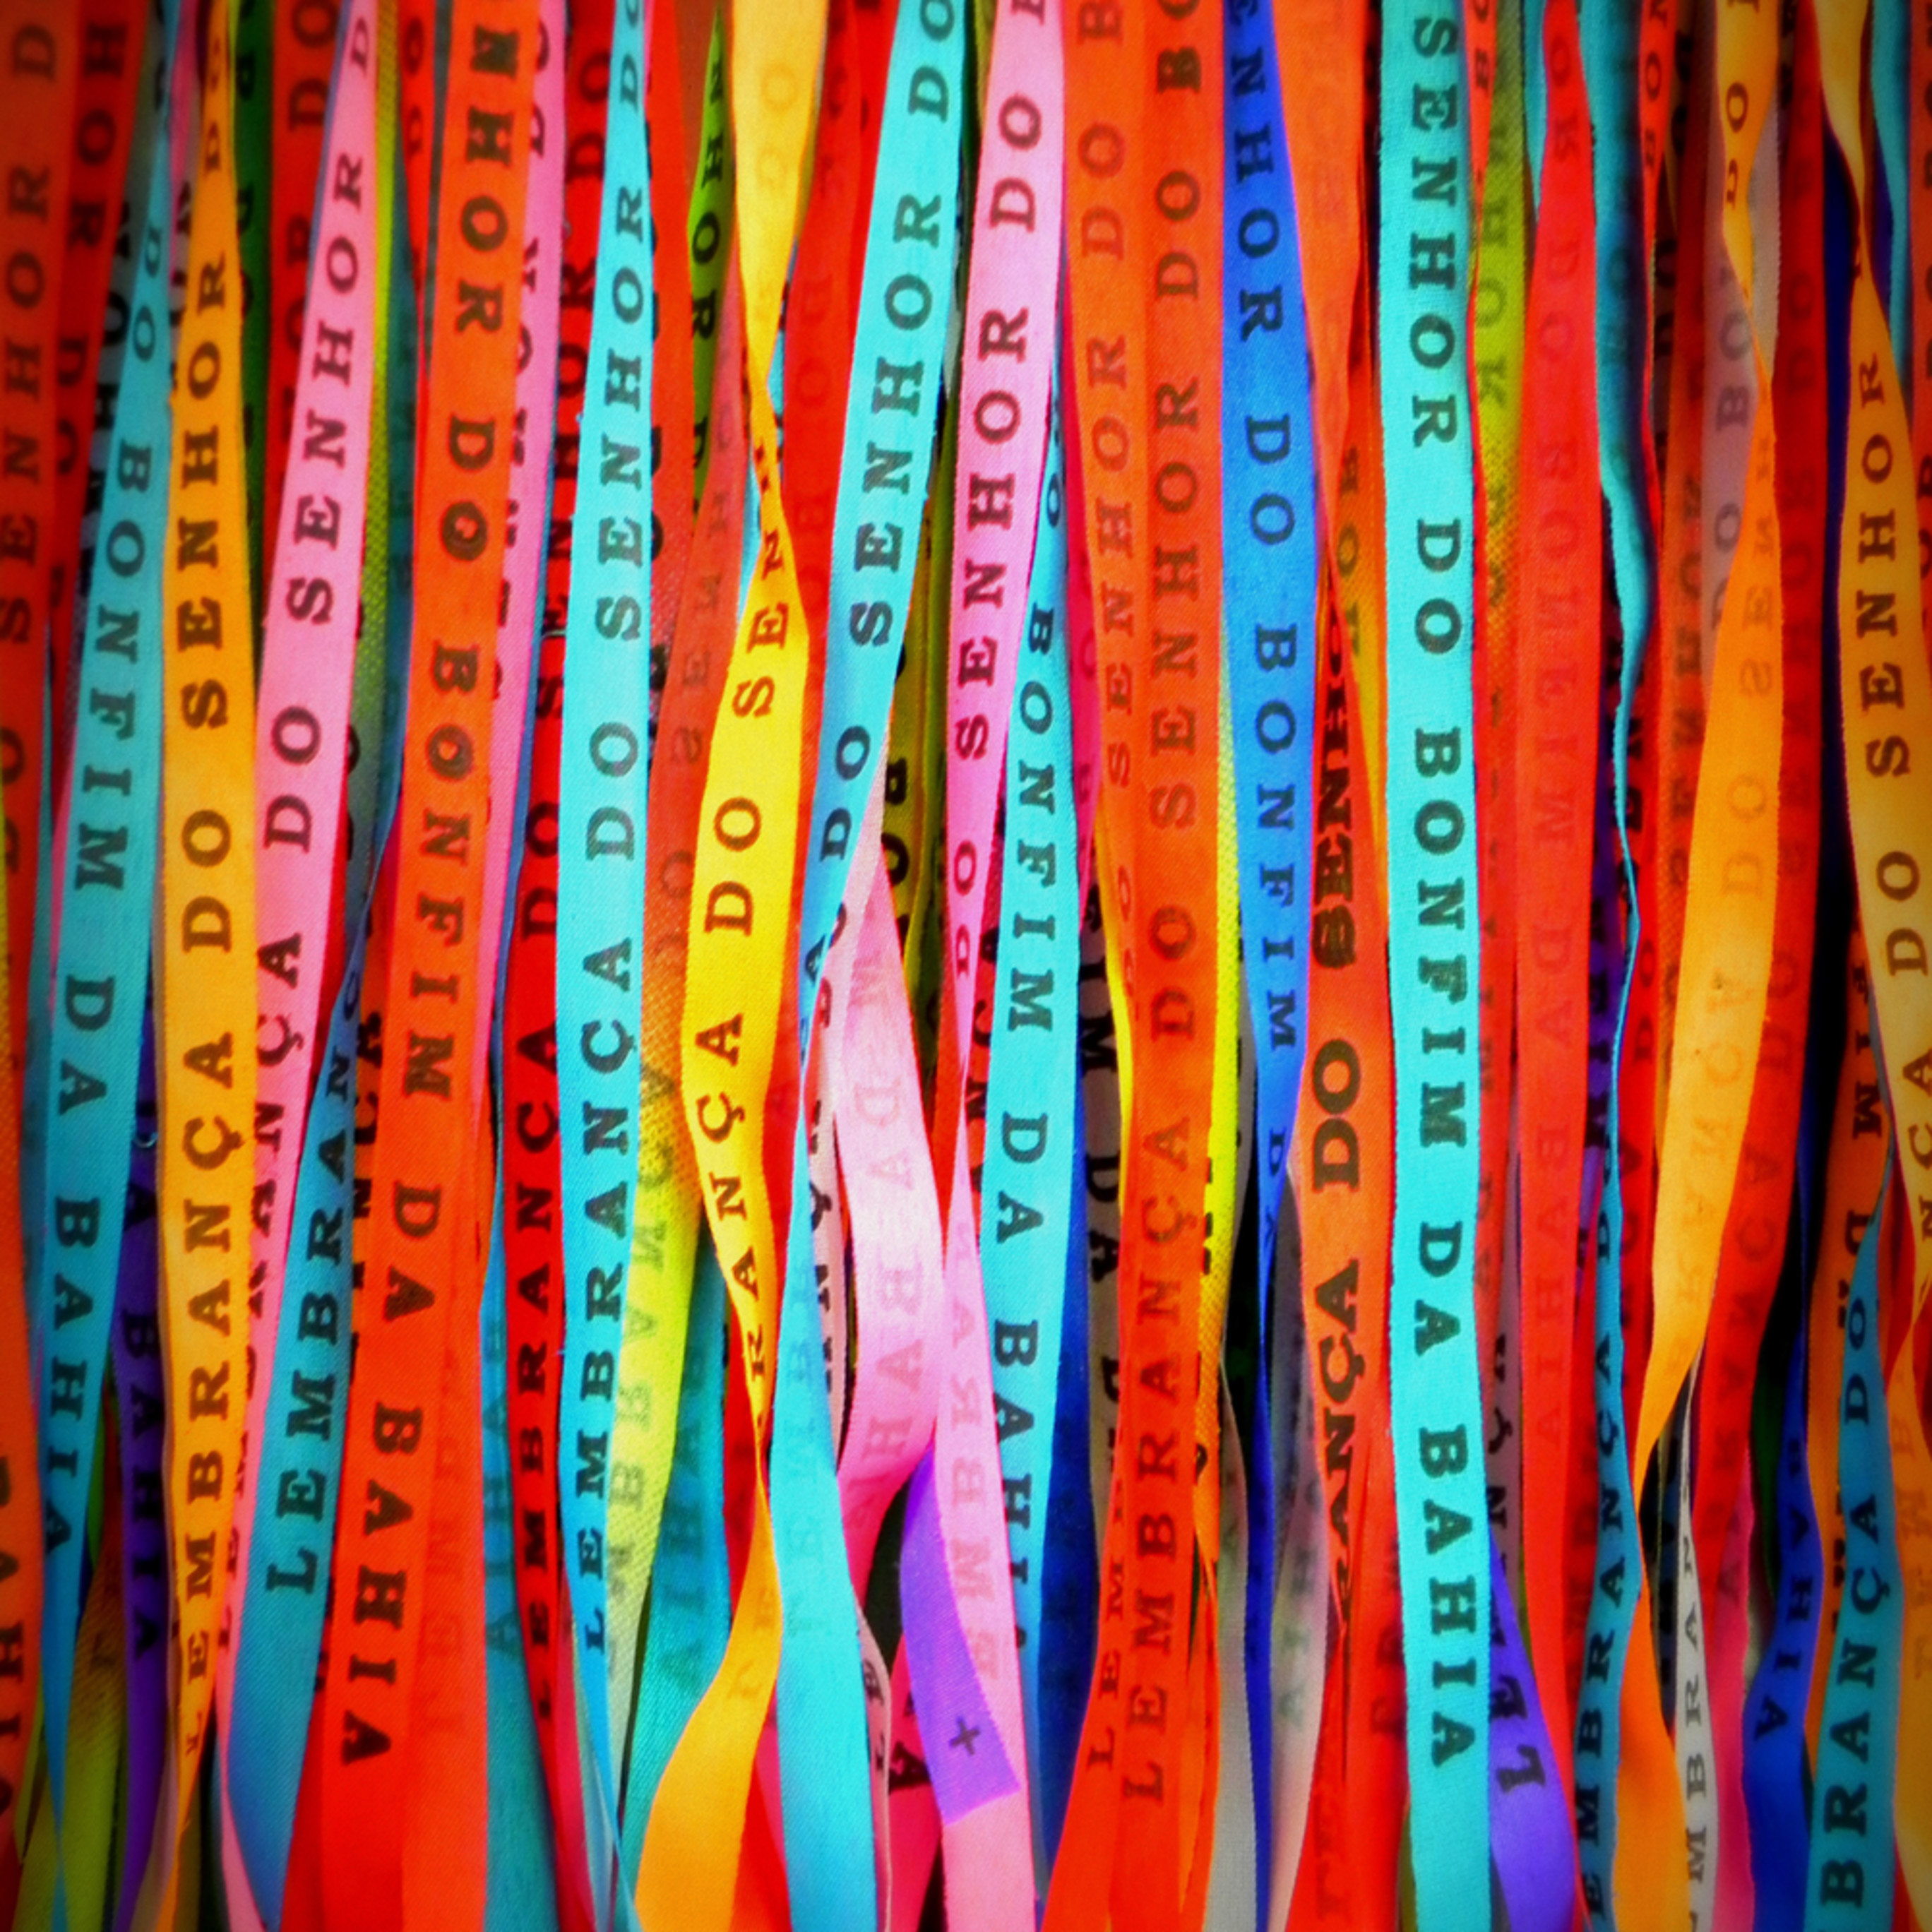 20327432 good lord end ribbons rjlxlh